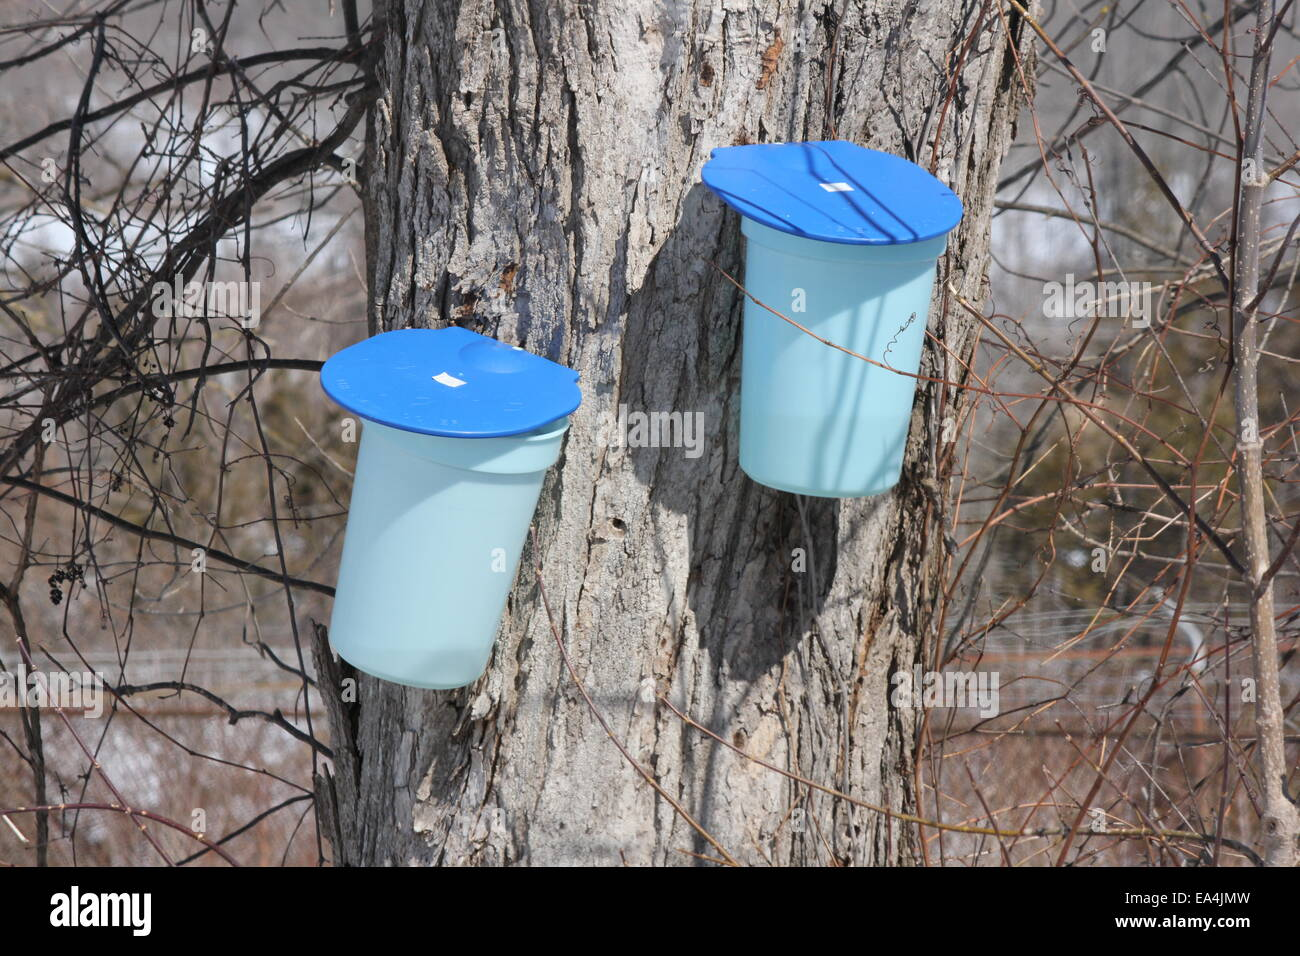 65835f1256c Plastic sap bucket catching sap from tapped maple tree to make maple syrup